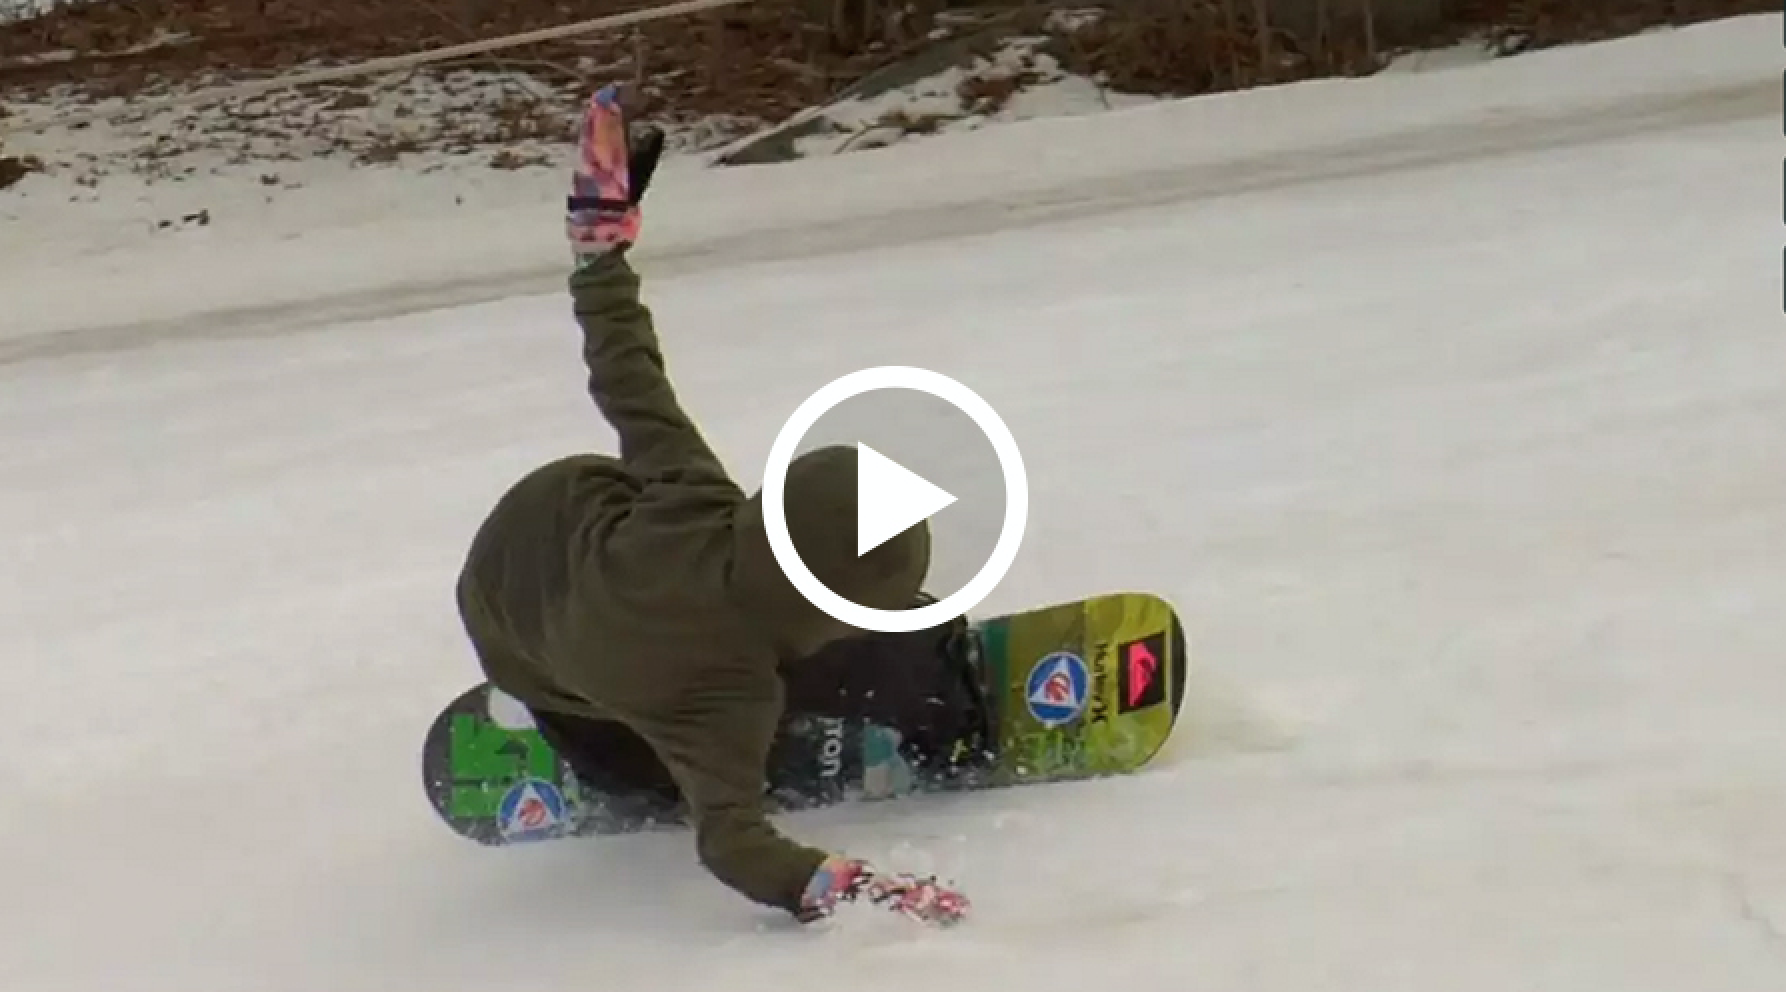 This Mini Yawgoon is already blowing minds with her slick board control and natural style.